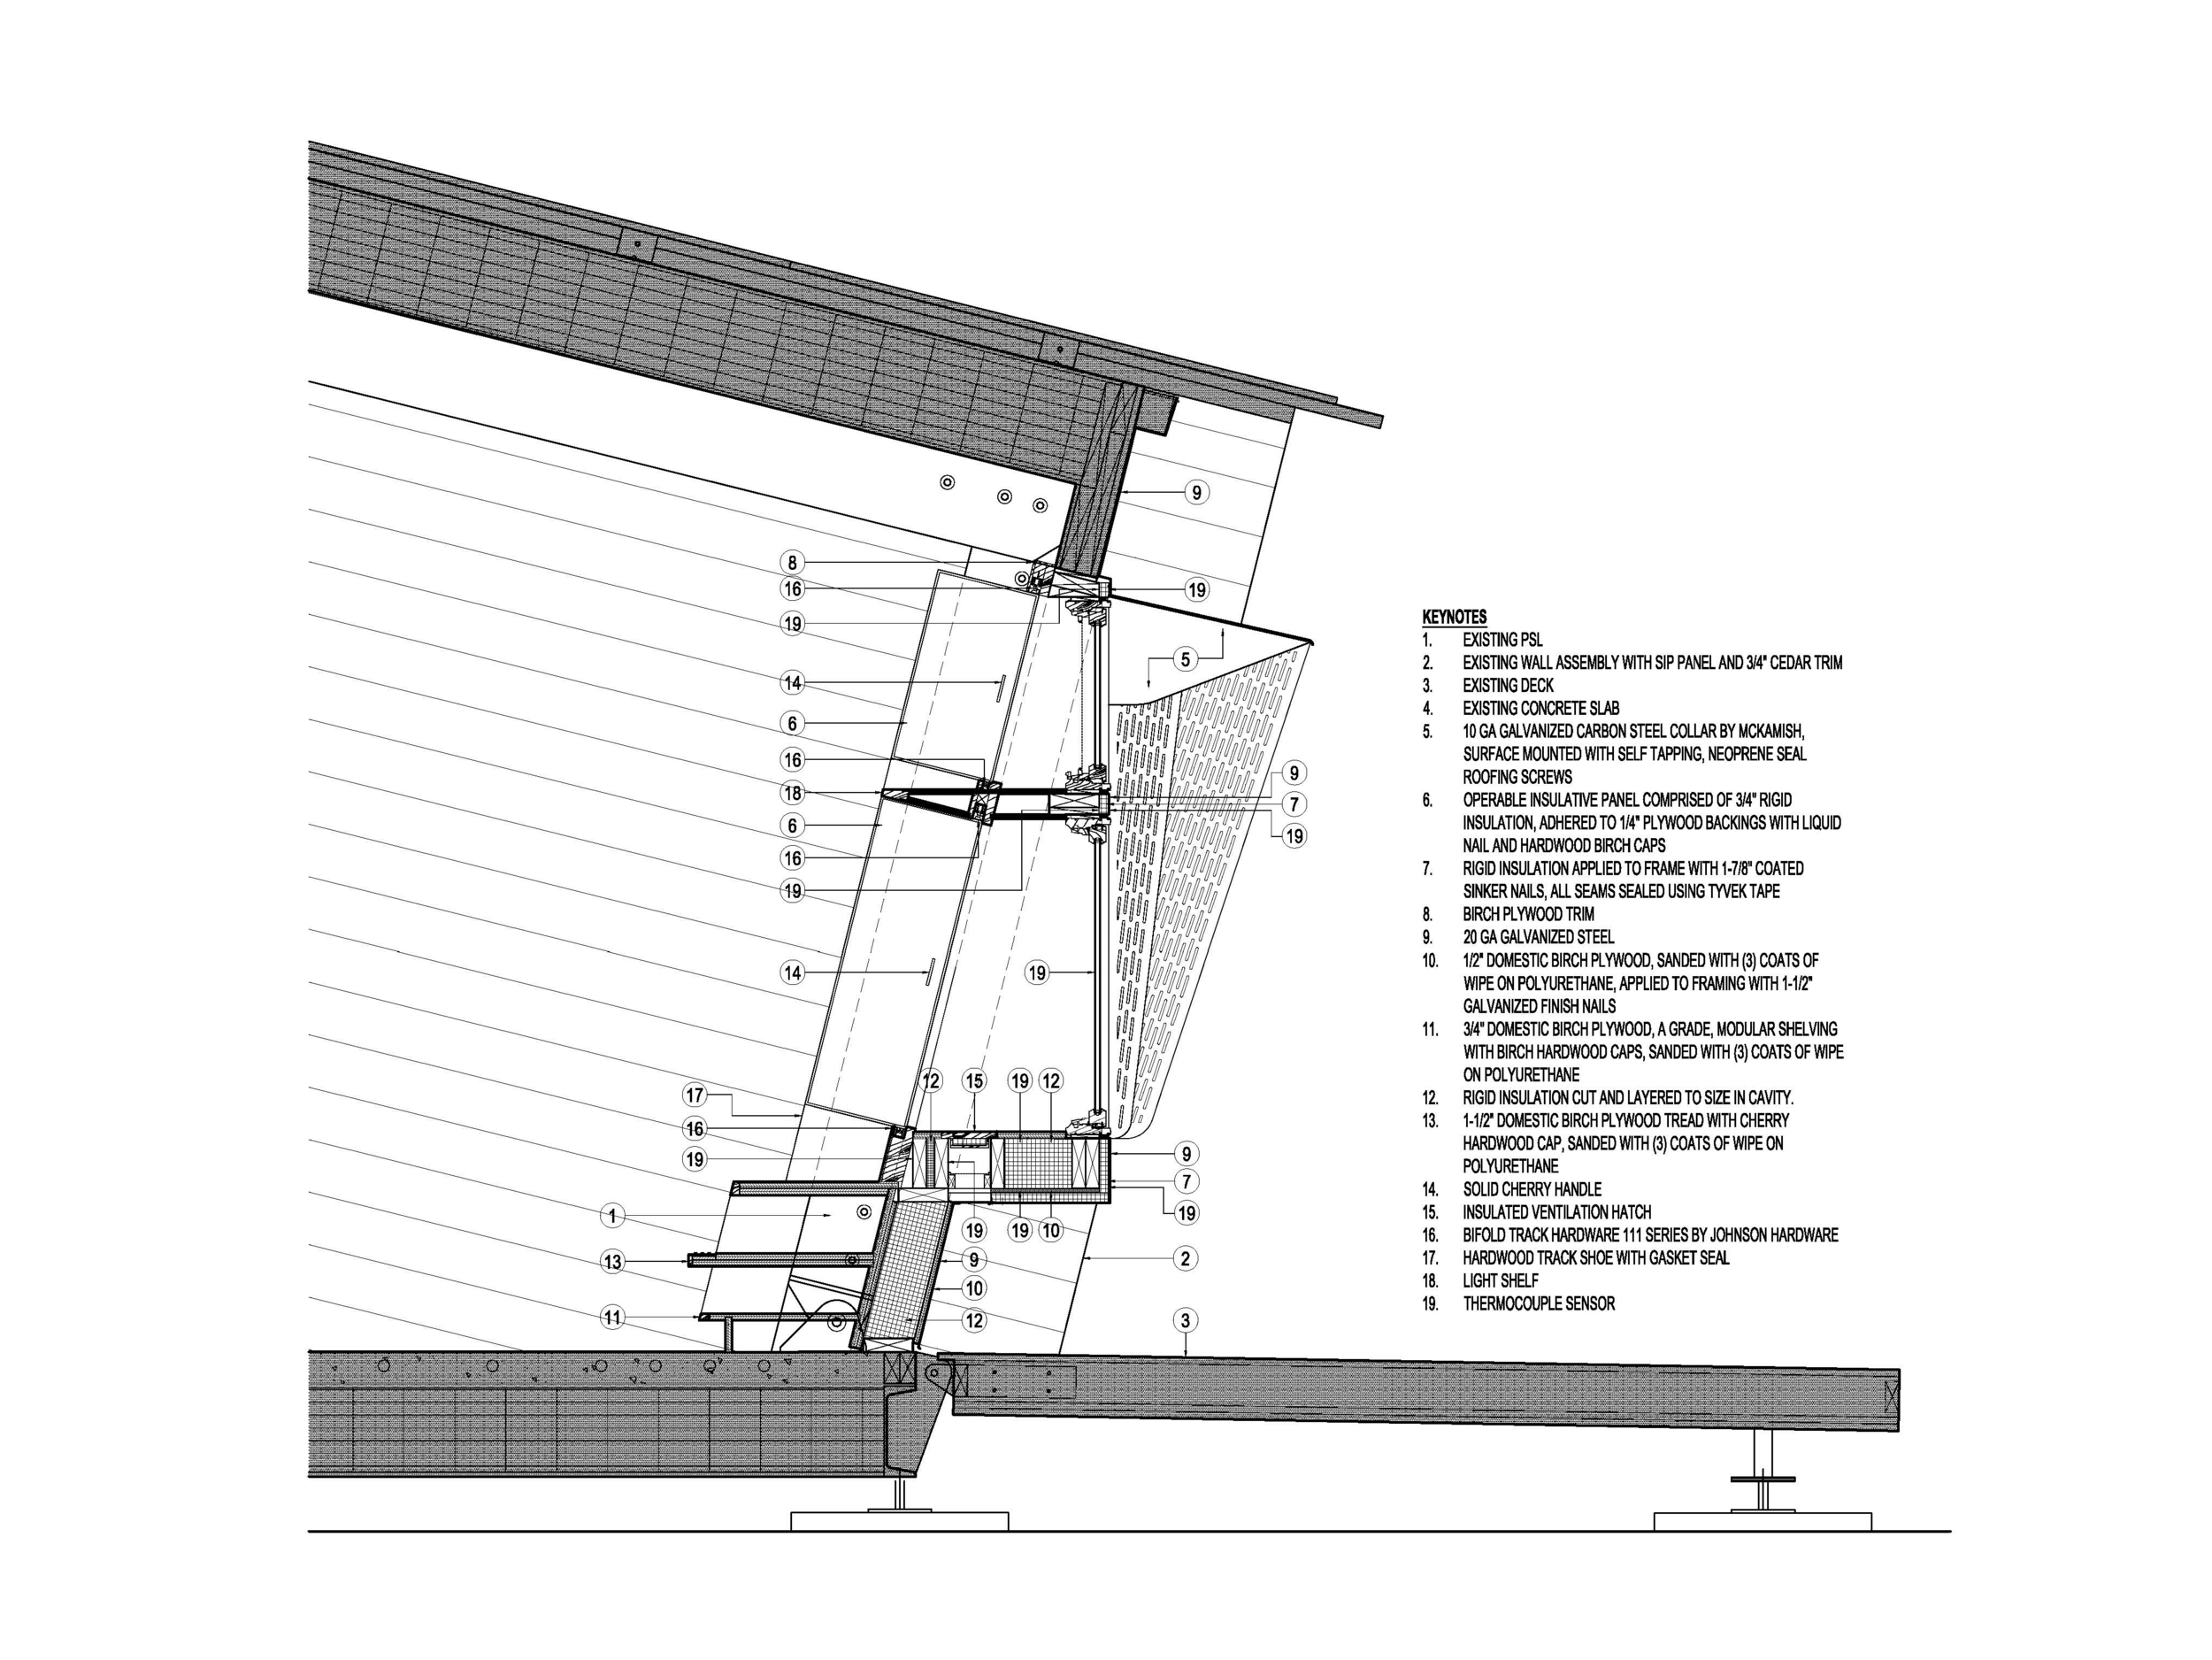 RE_VIEW wall section excerpt from construction document set.